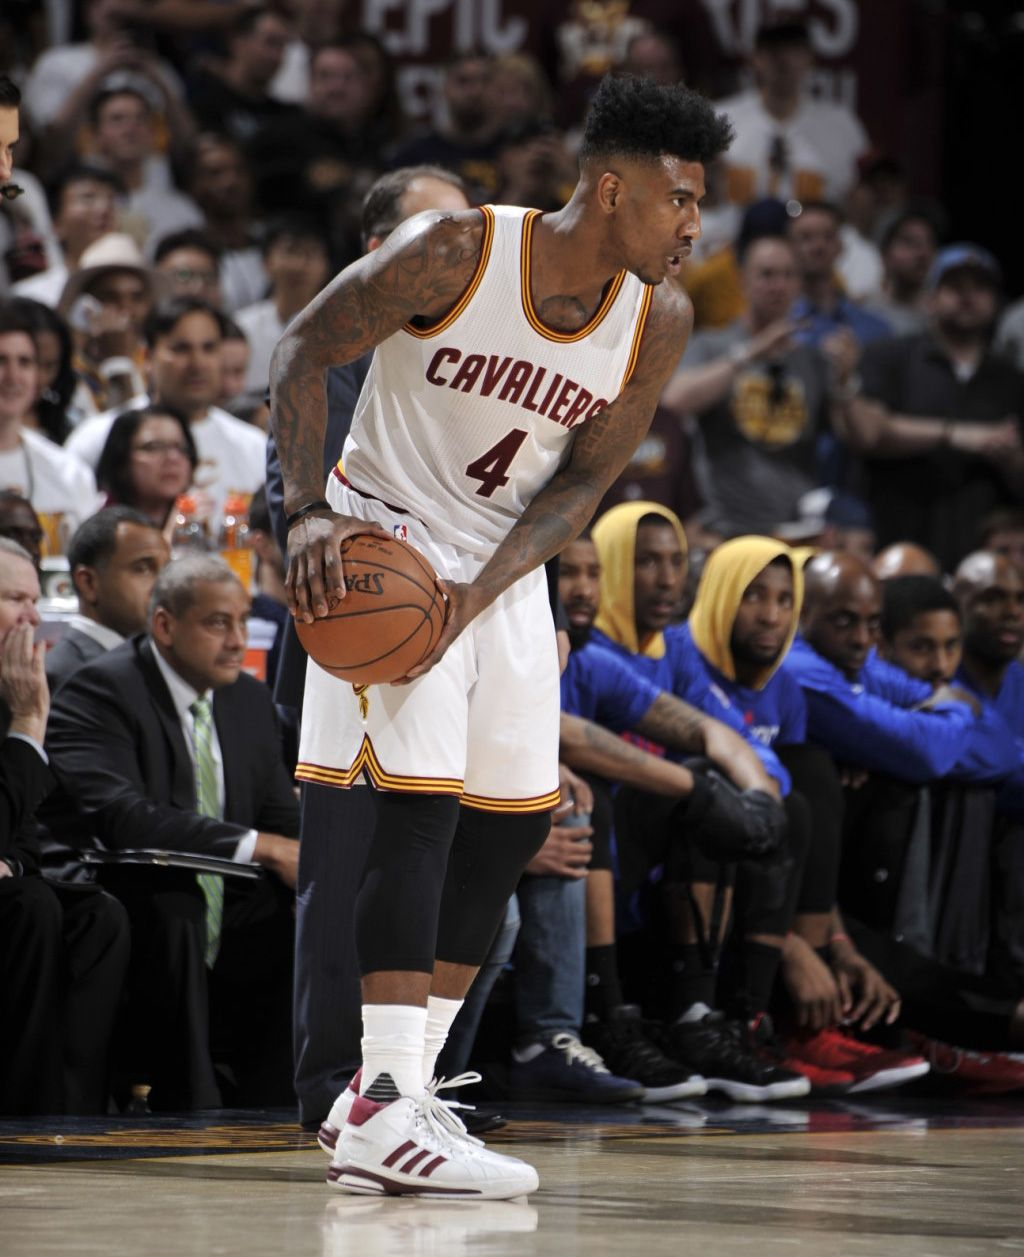 The Cleveland Cavaliers Playoff Kicks On Court Nice